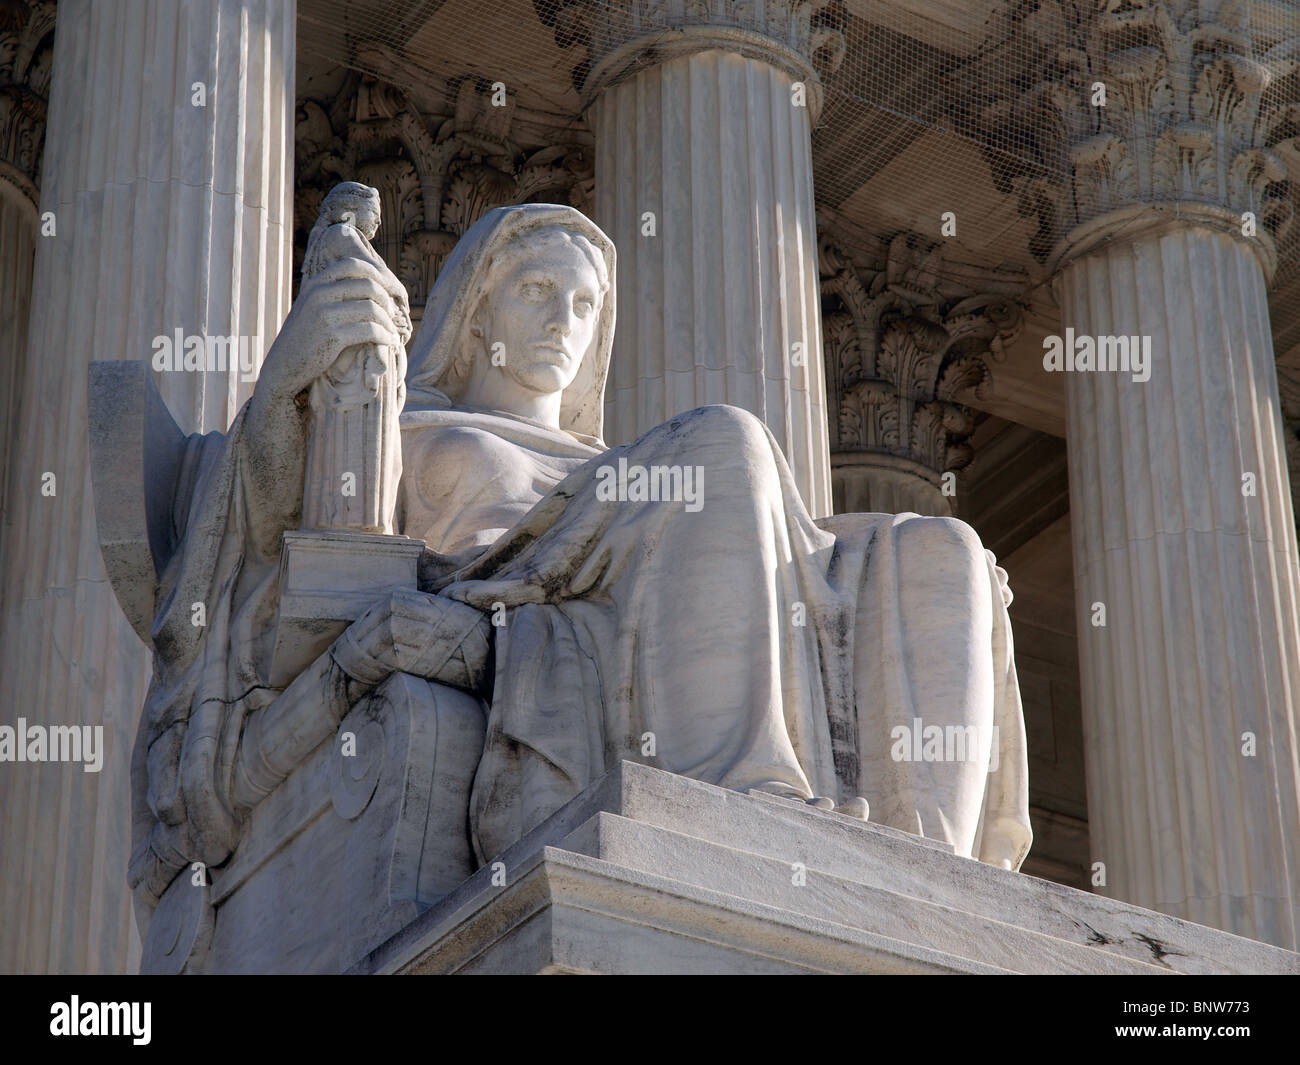 Historic United States Supreme Court Building Statue, entitled 'Contemplation of Justice'. - Stock Image